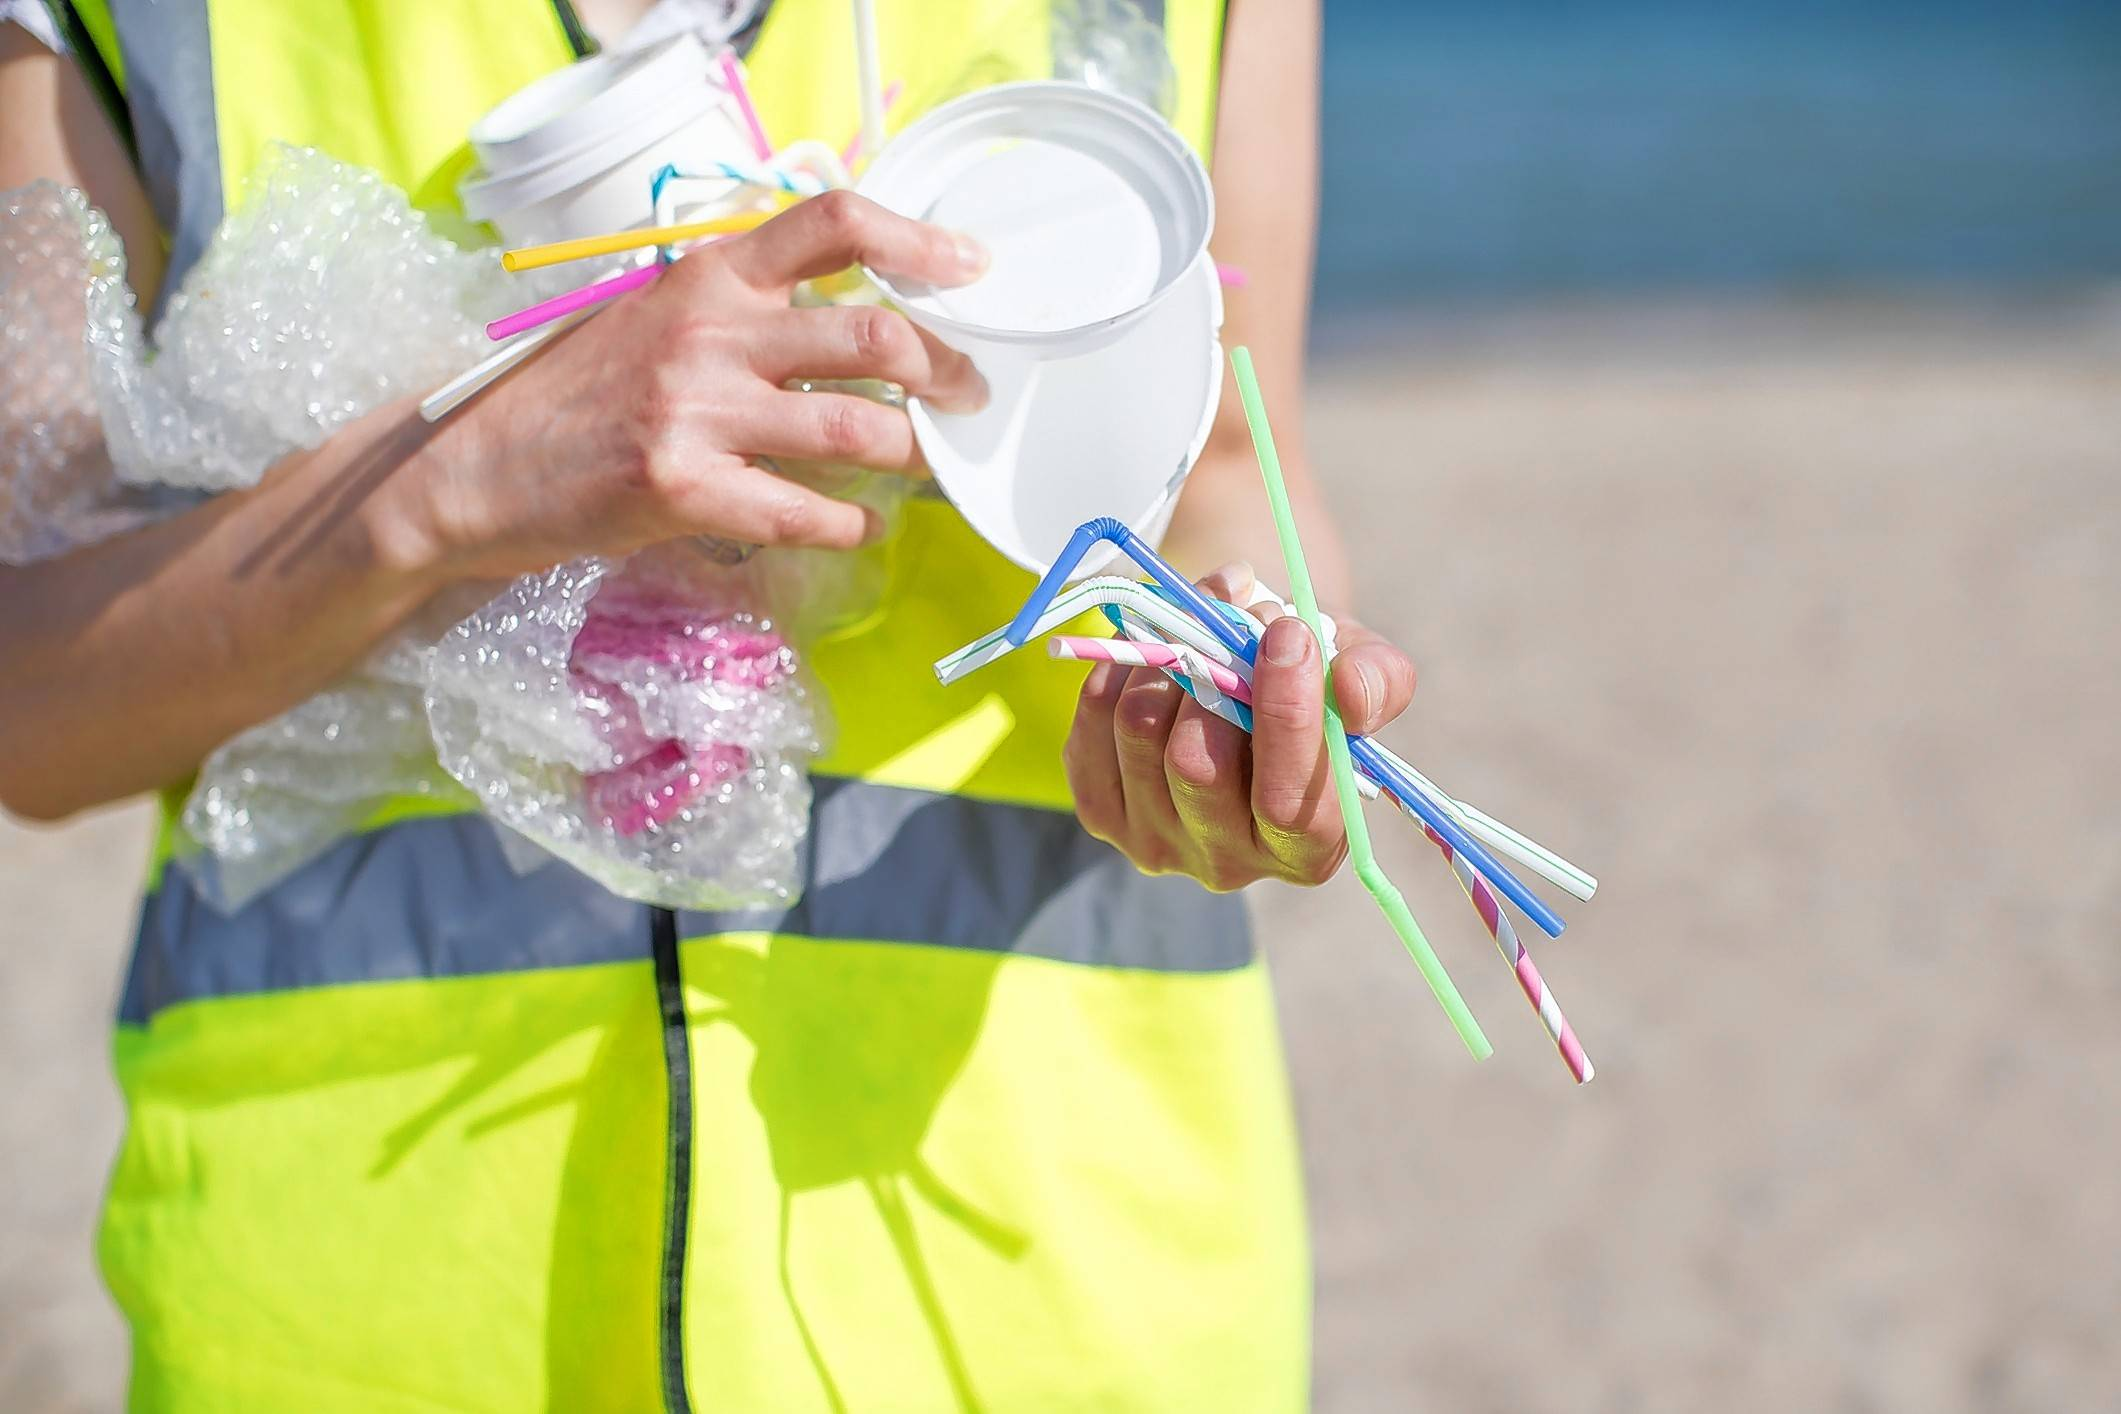 An estimated 7.5 percent of plastic in the environment comes from straws and stirrers. Degraded plastics found in the ocean are ingested by marine wildlife, making their way up the food chain and perhaps winding up at the dinner table.